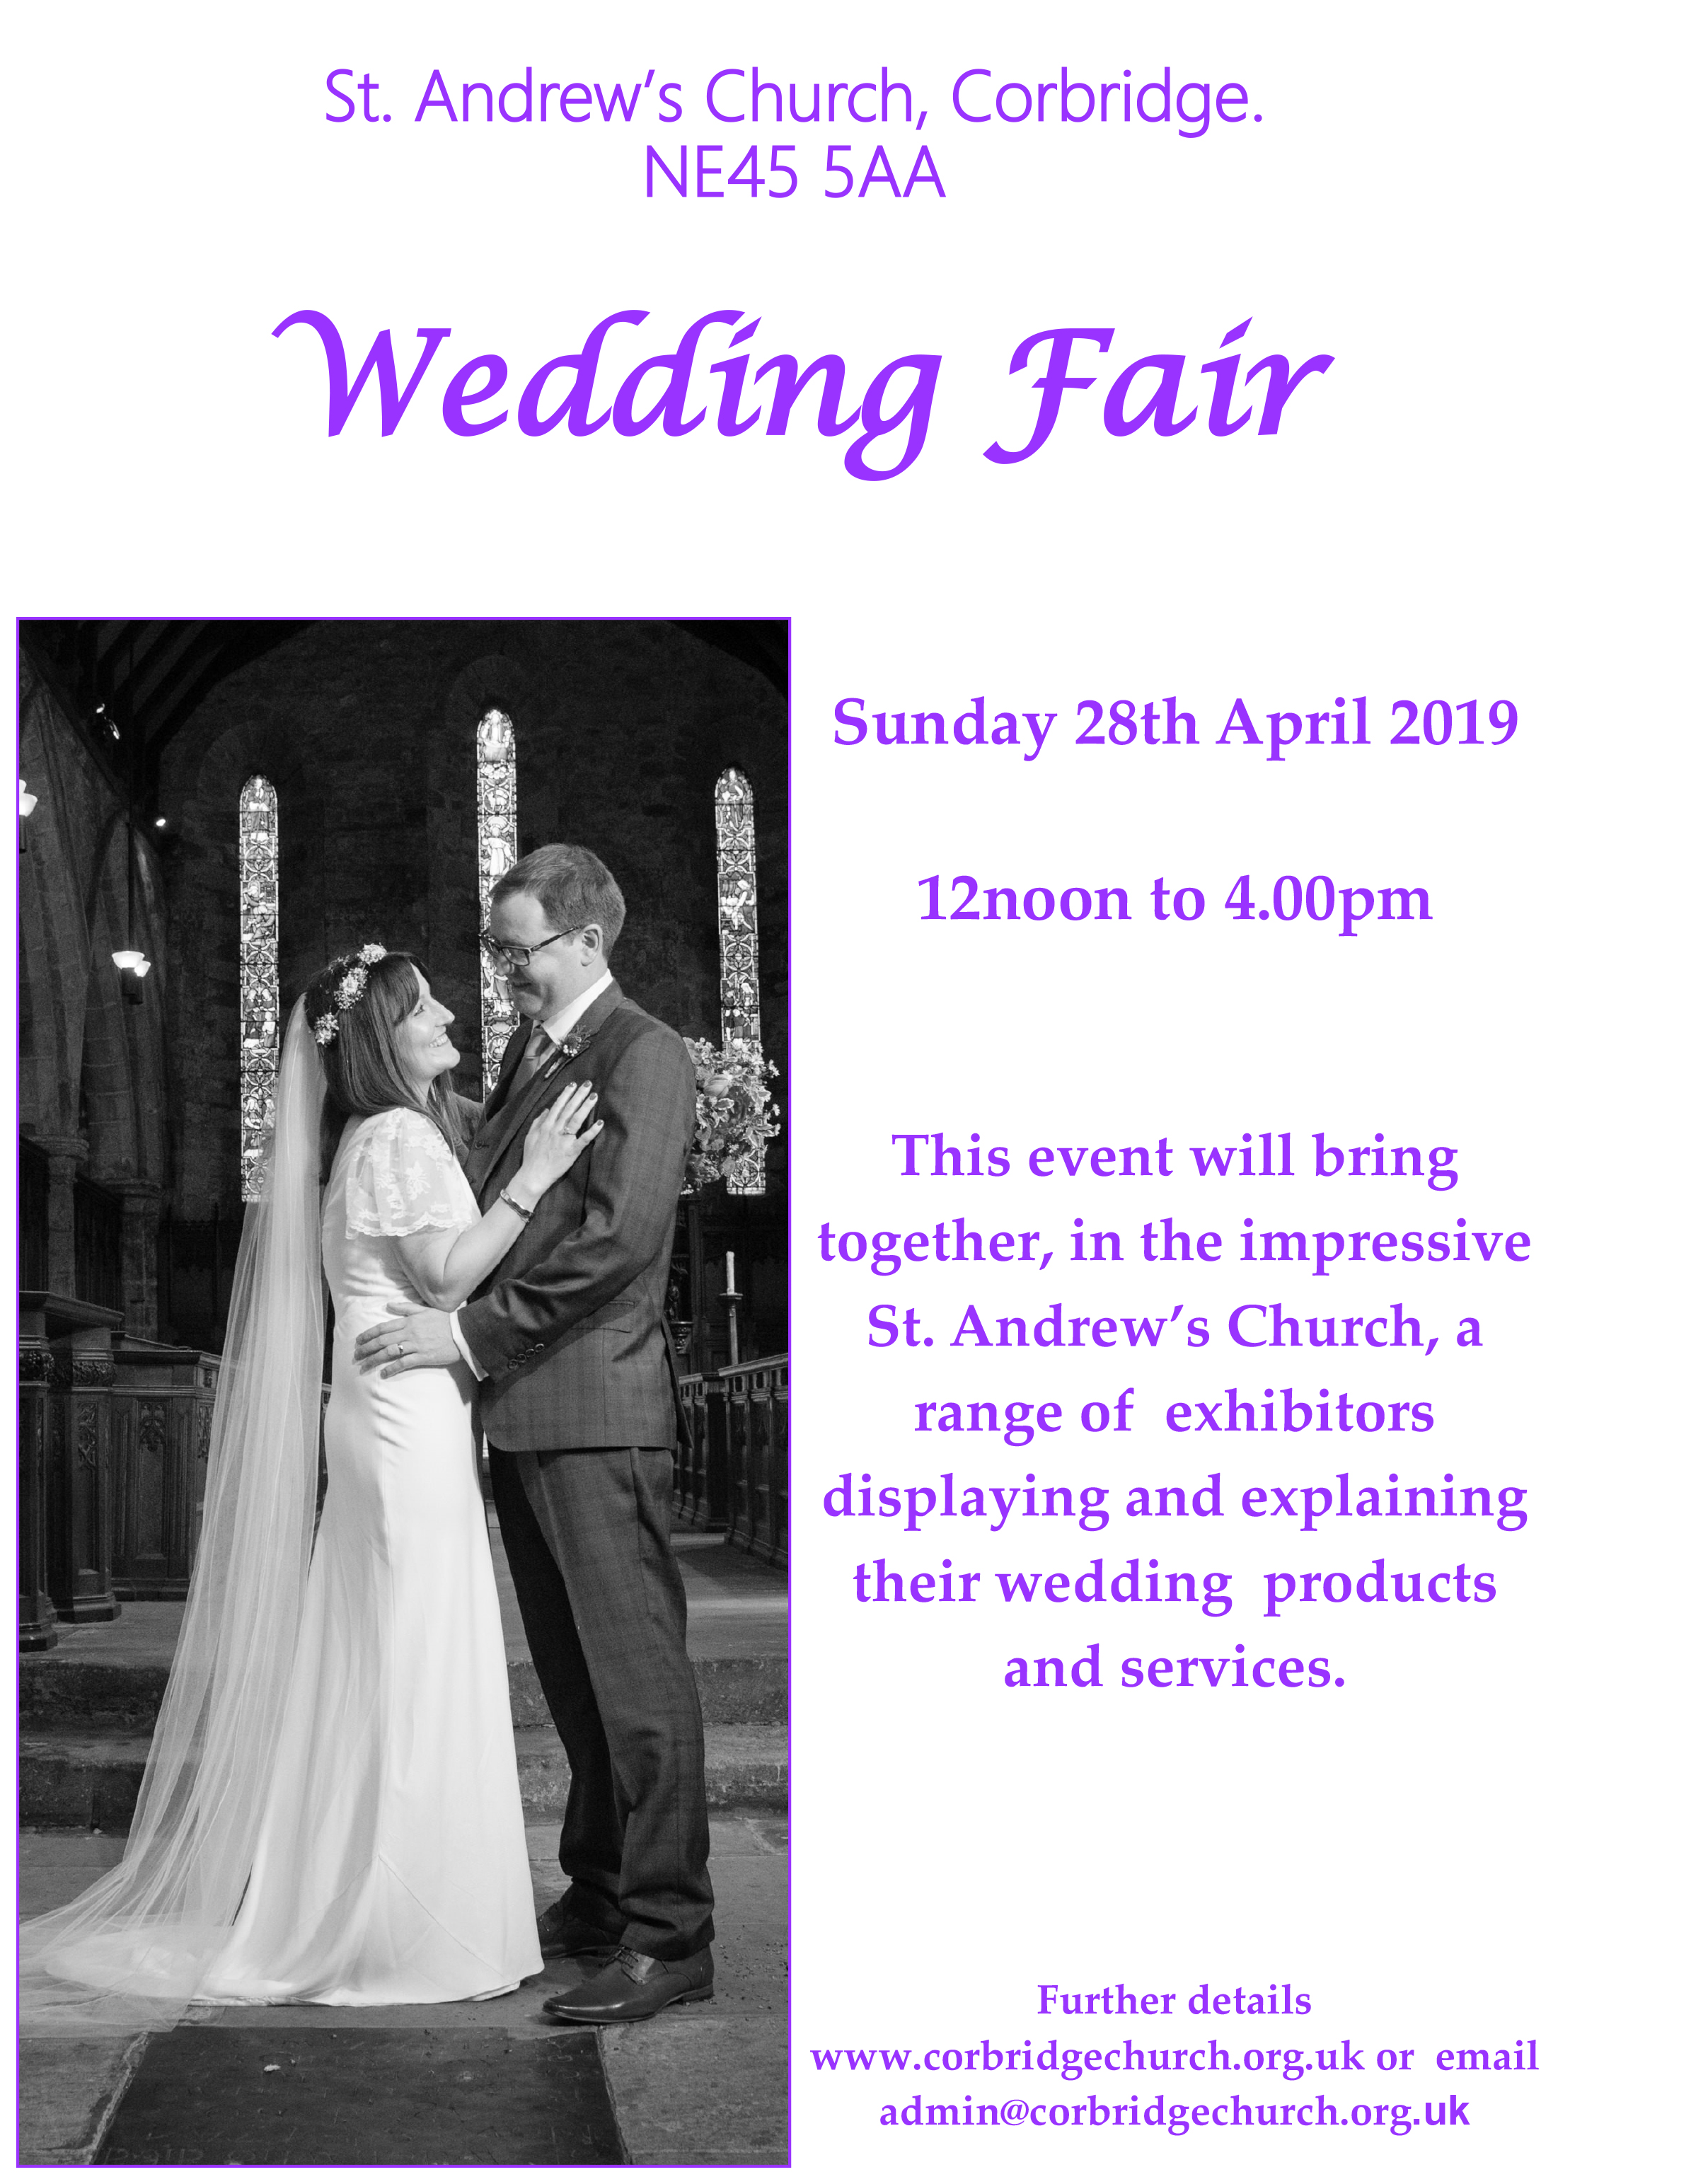 Corbridge Wedding Fair 2019